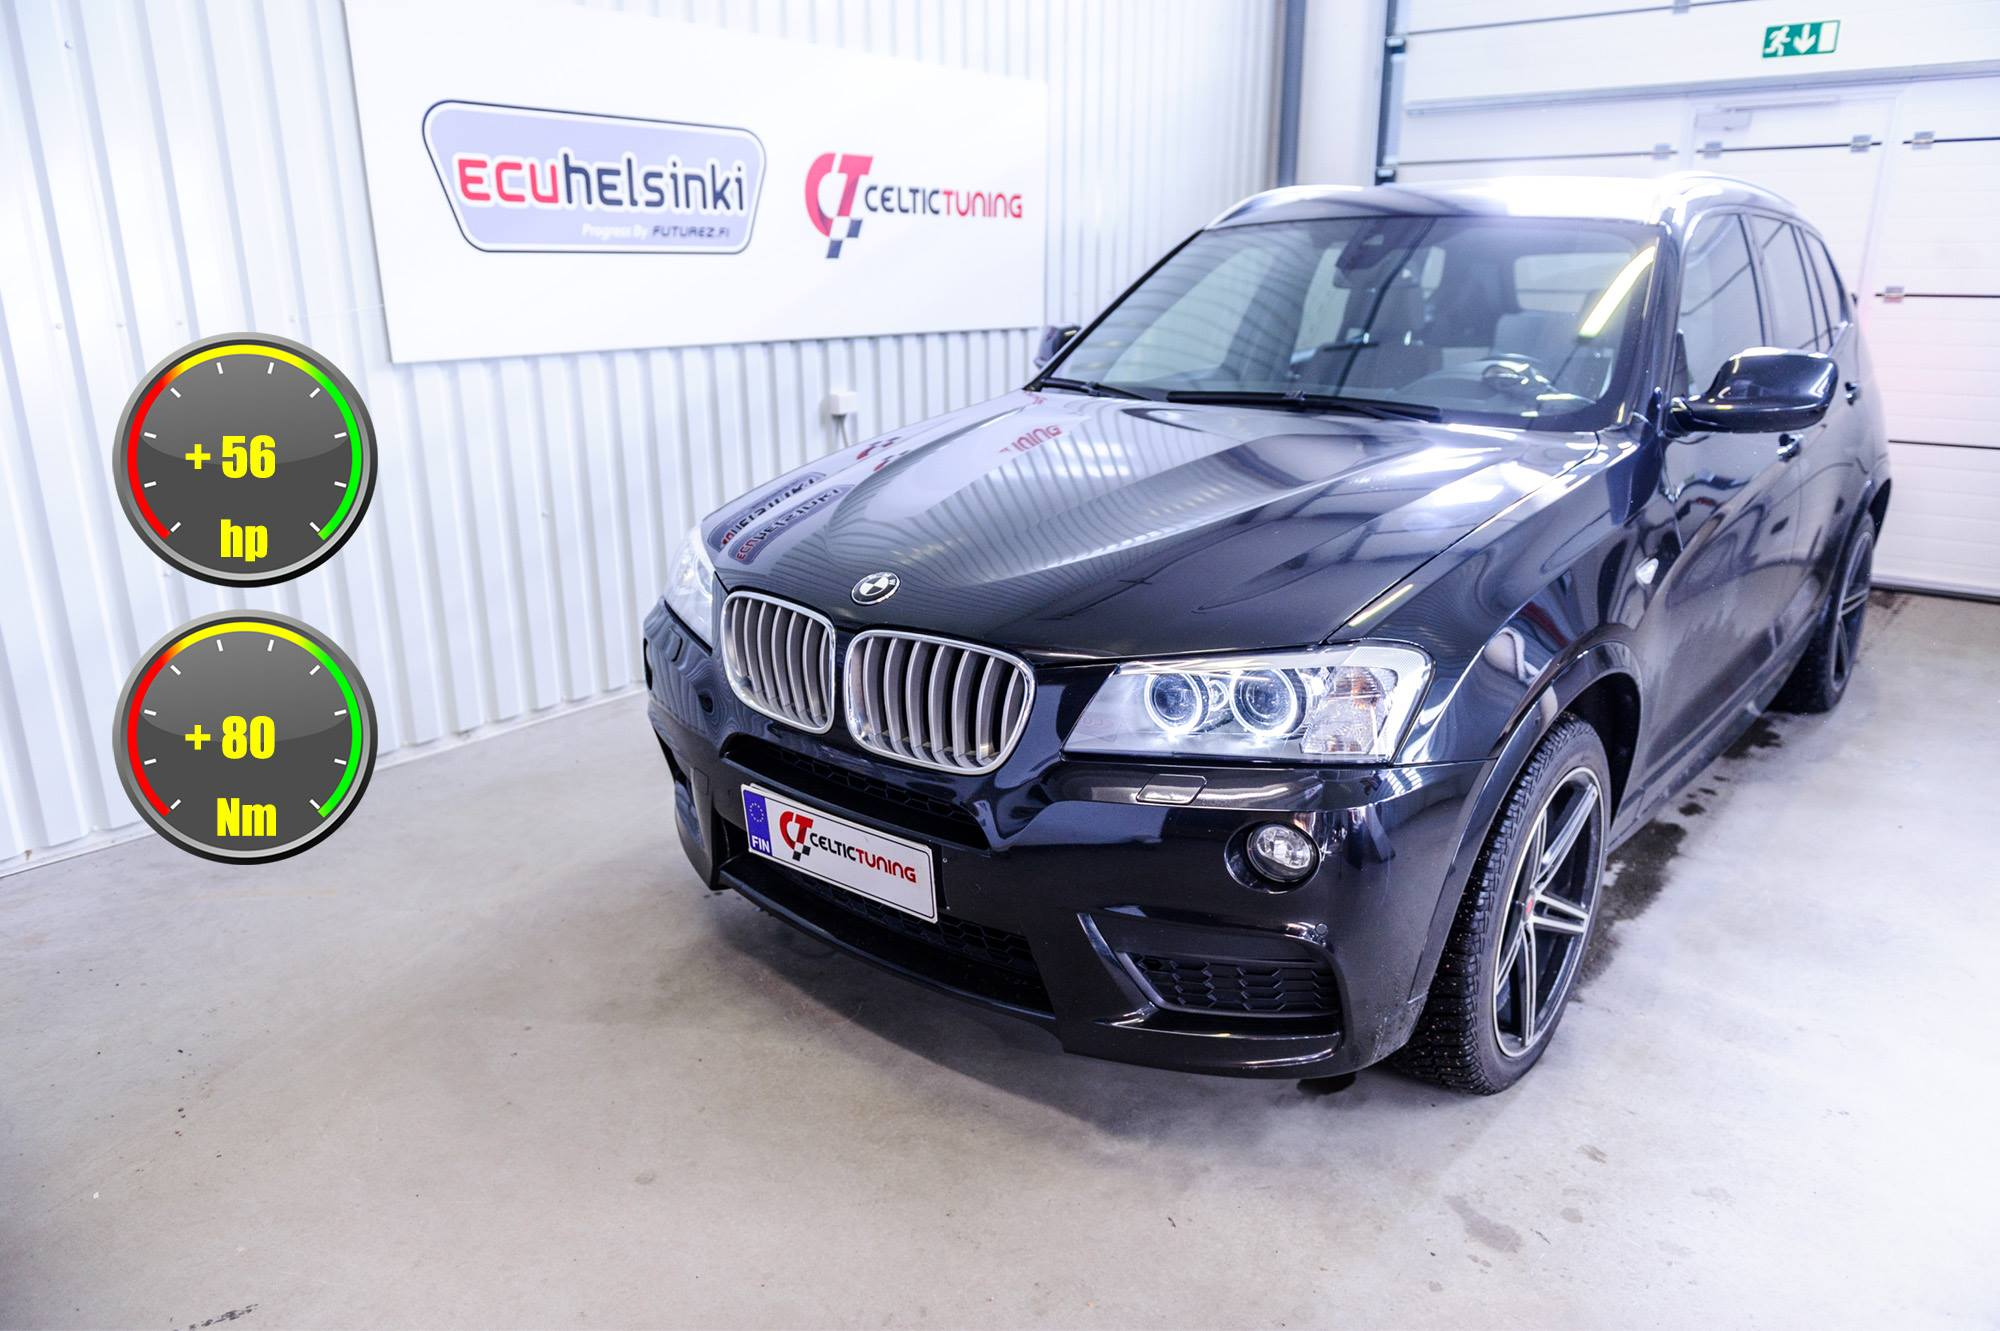 BMW X3 30D lastutus celtic tuning